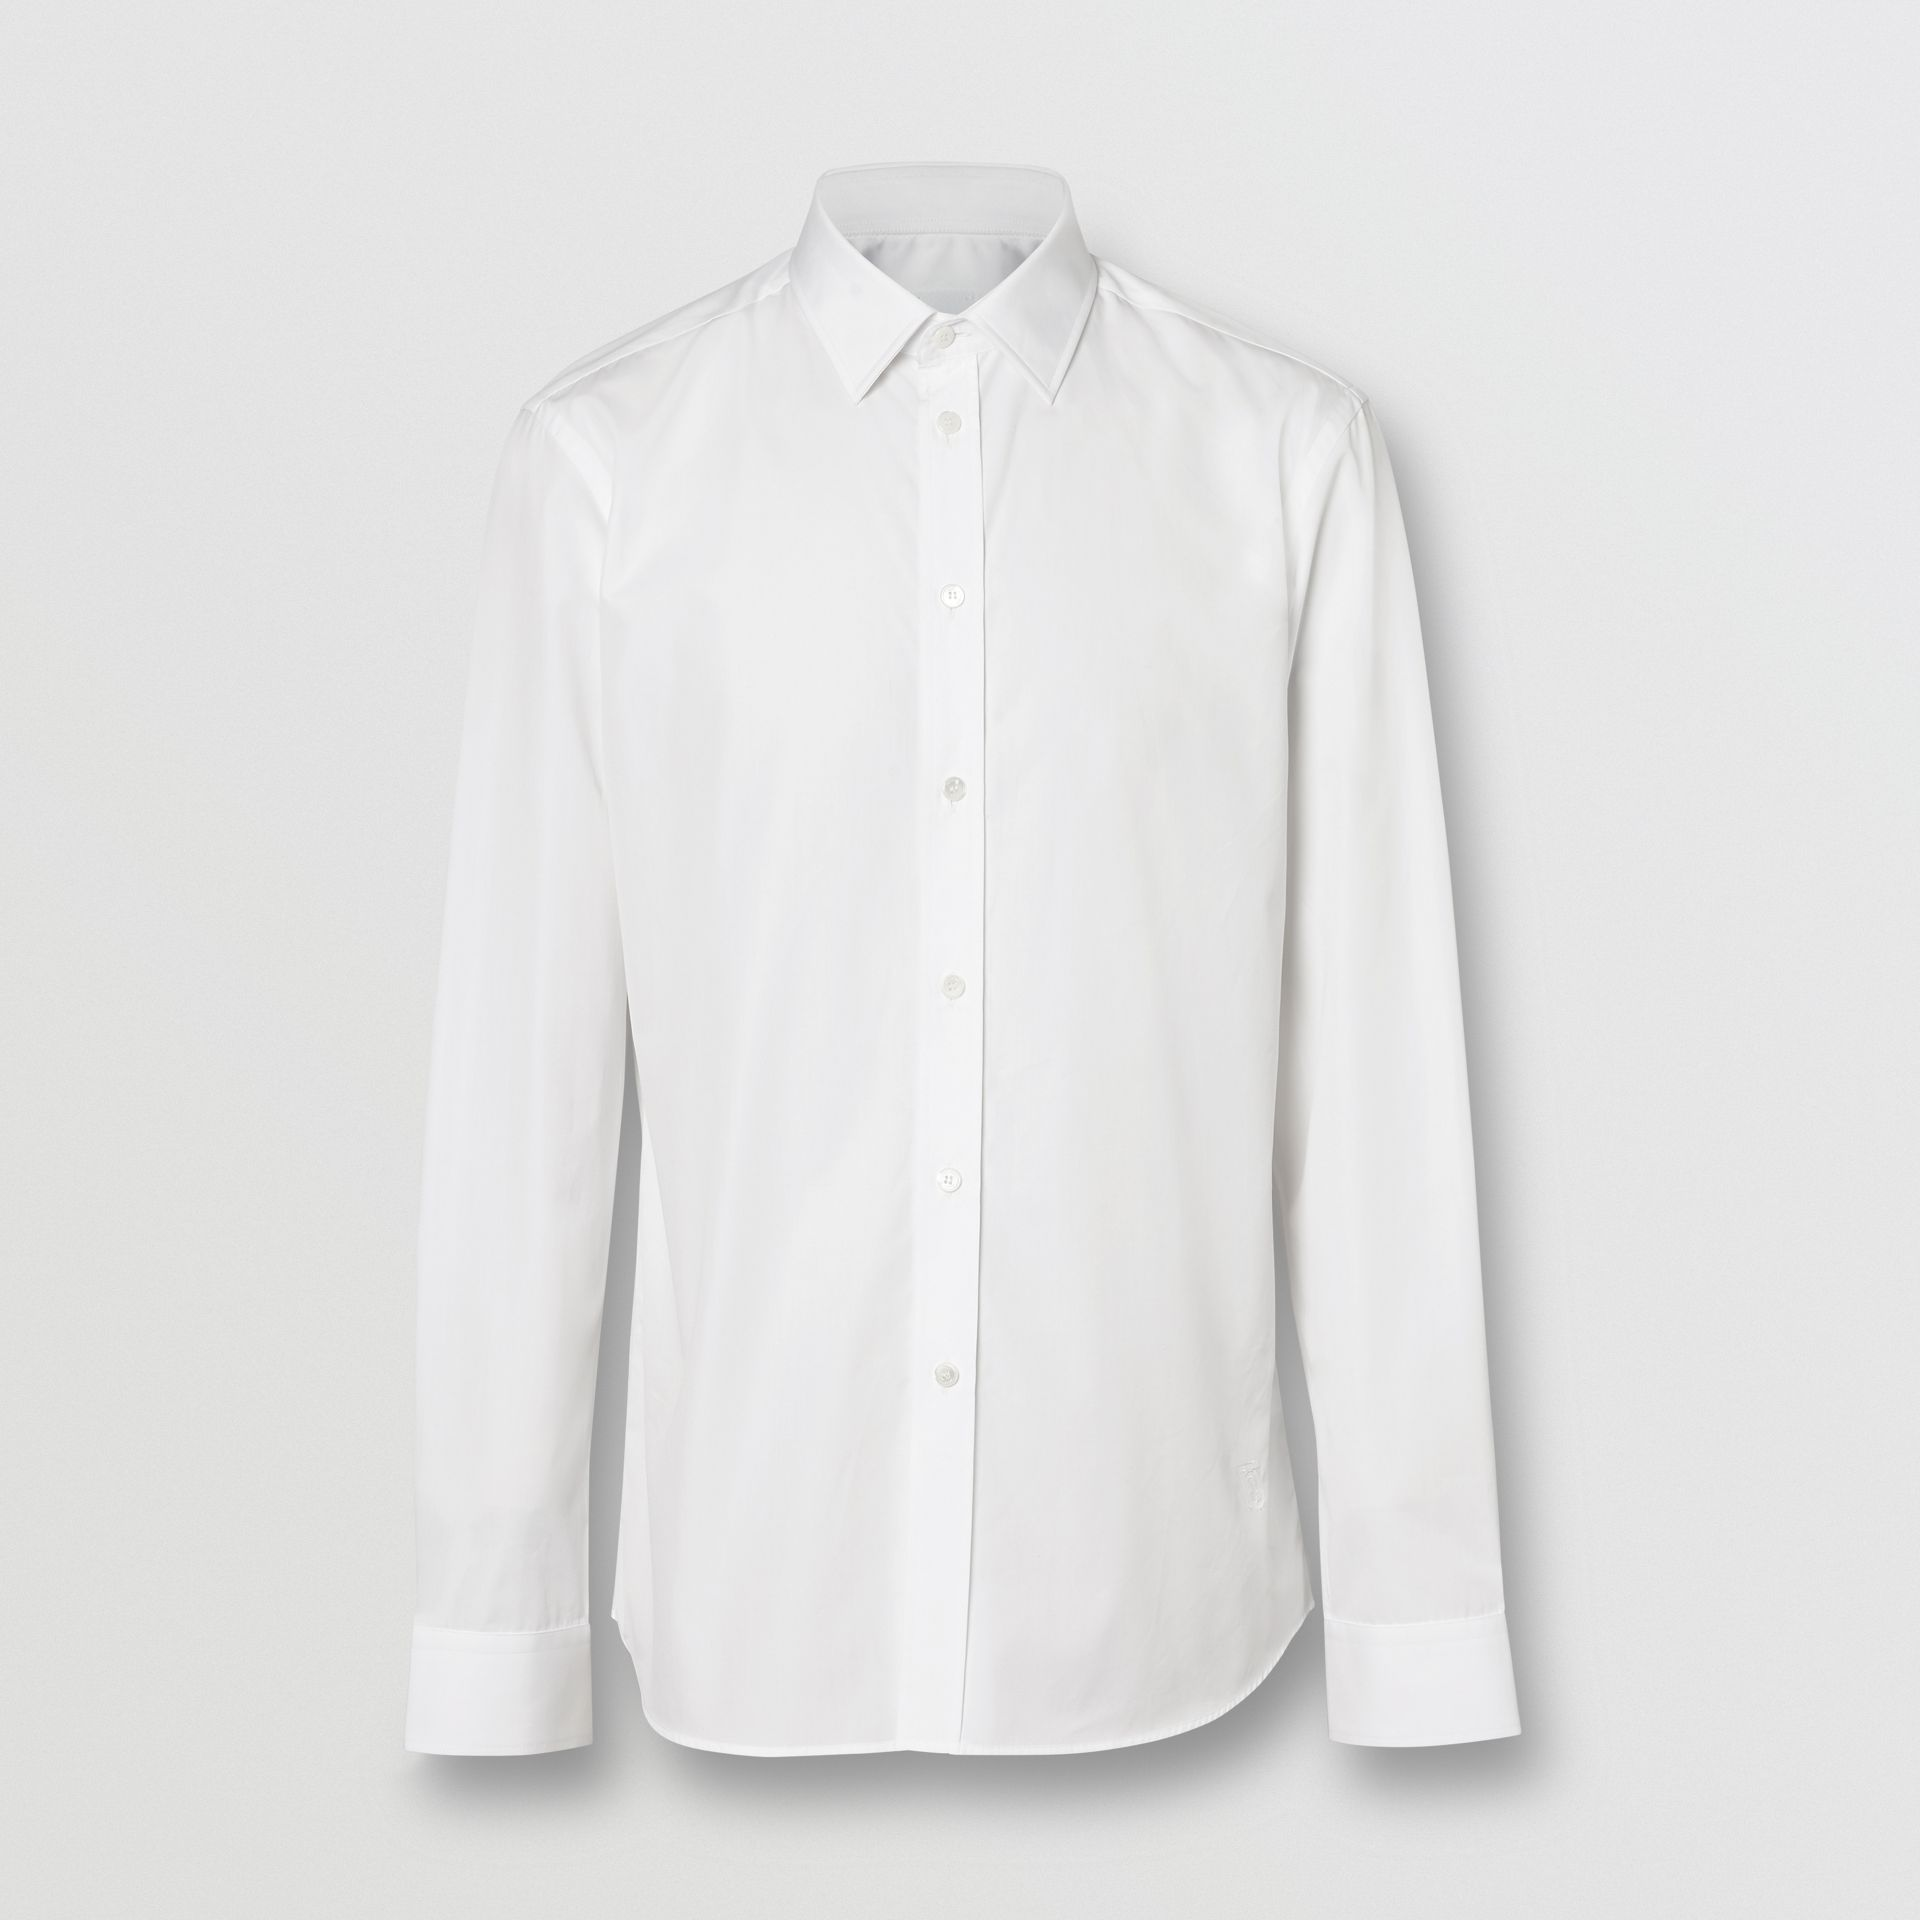 Slim Fit Monogram Motif Cotton Poplin Shirt in White - Men | Burberry - gallery image 3